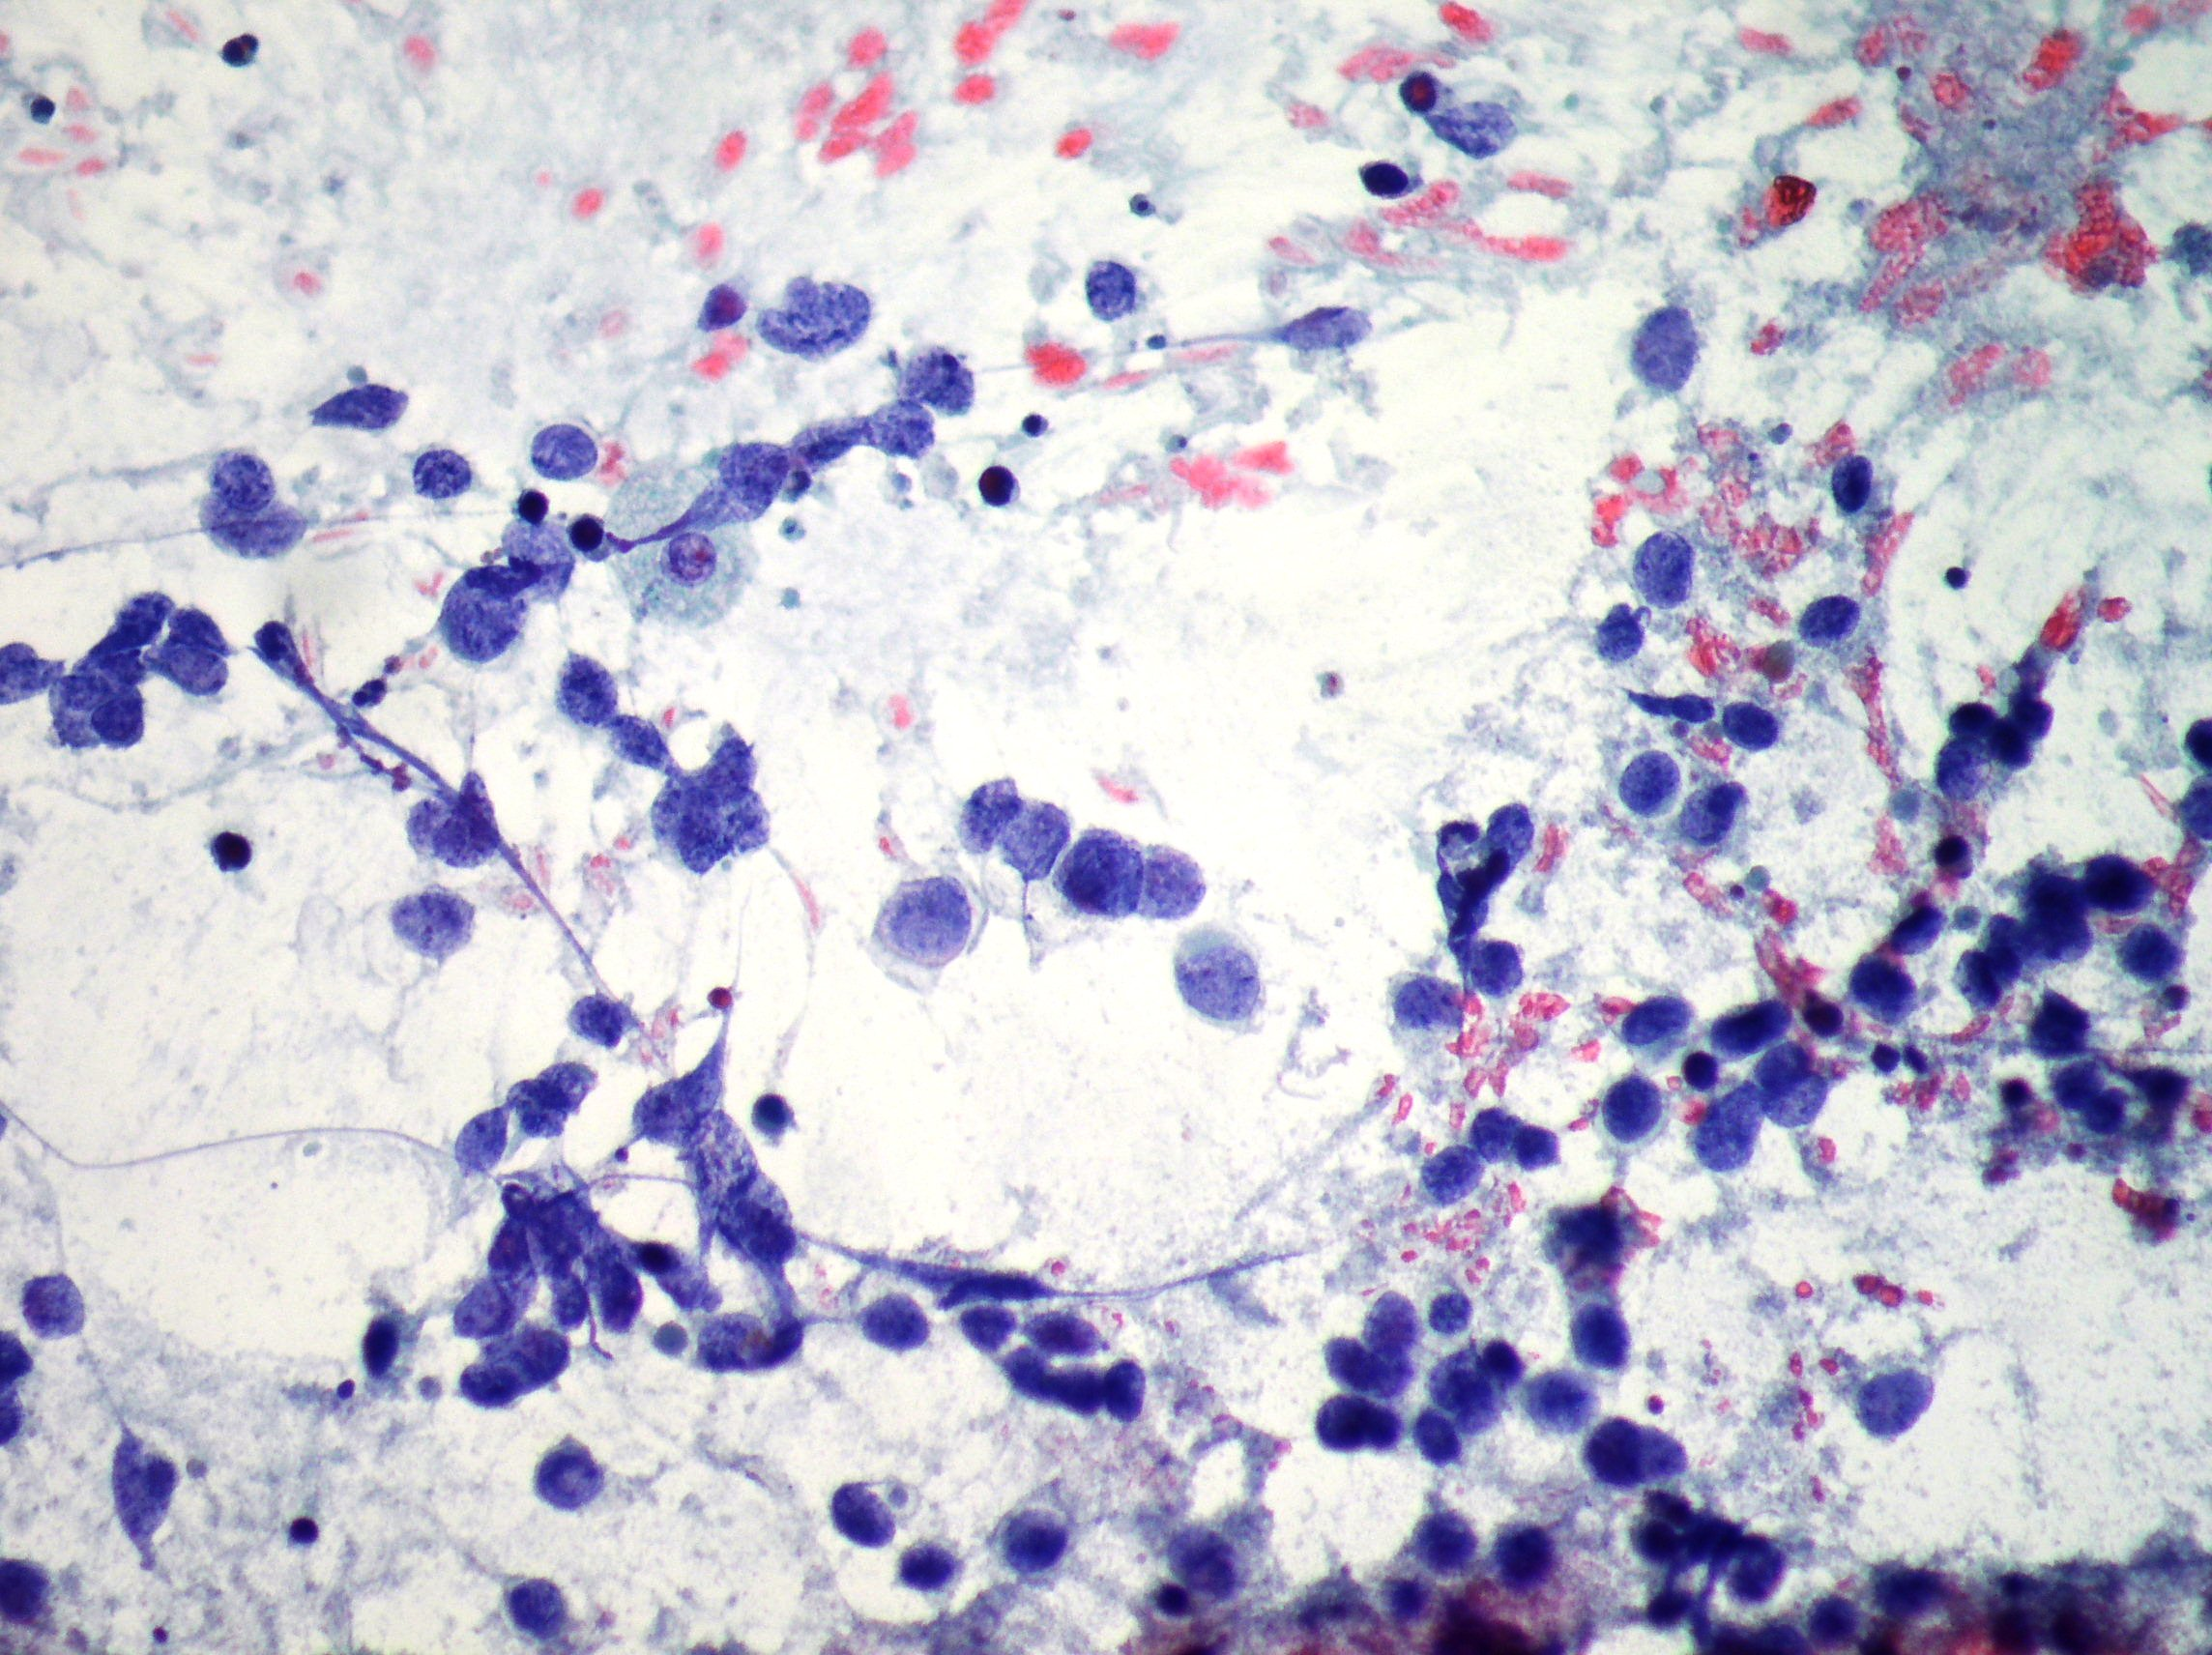 Diagnostic cytopathology of the lung and immunocytochemistry